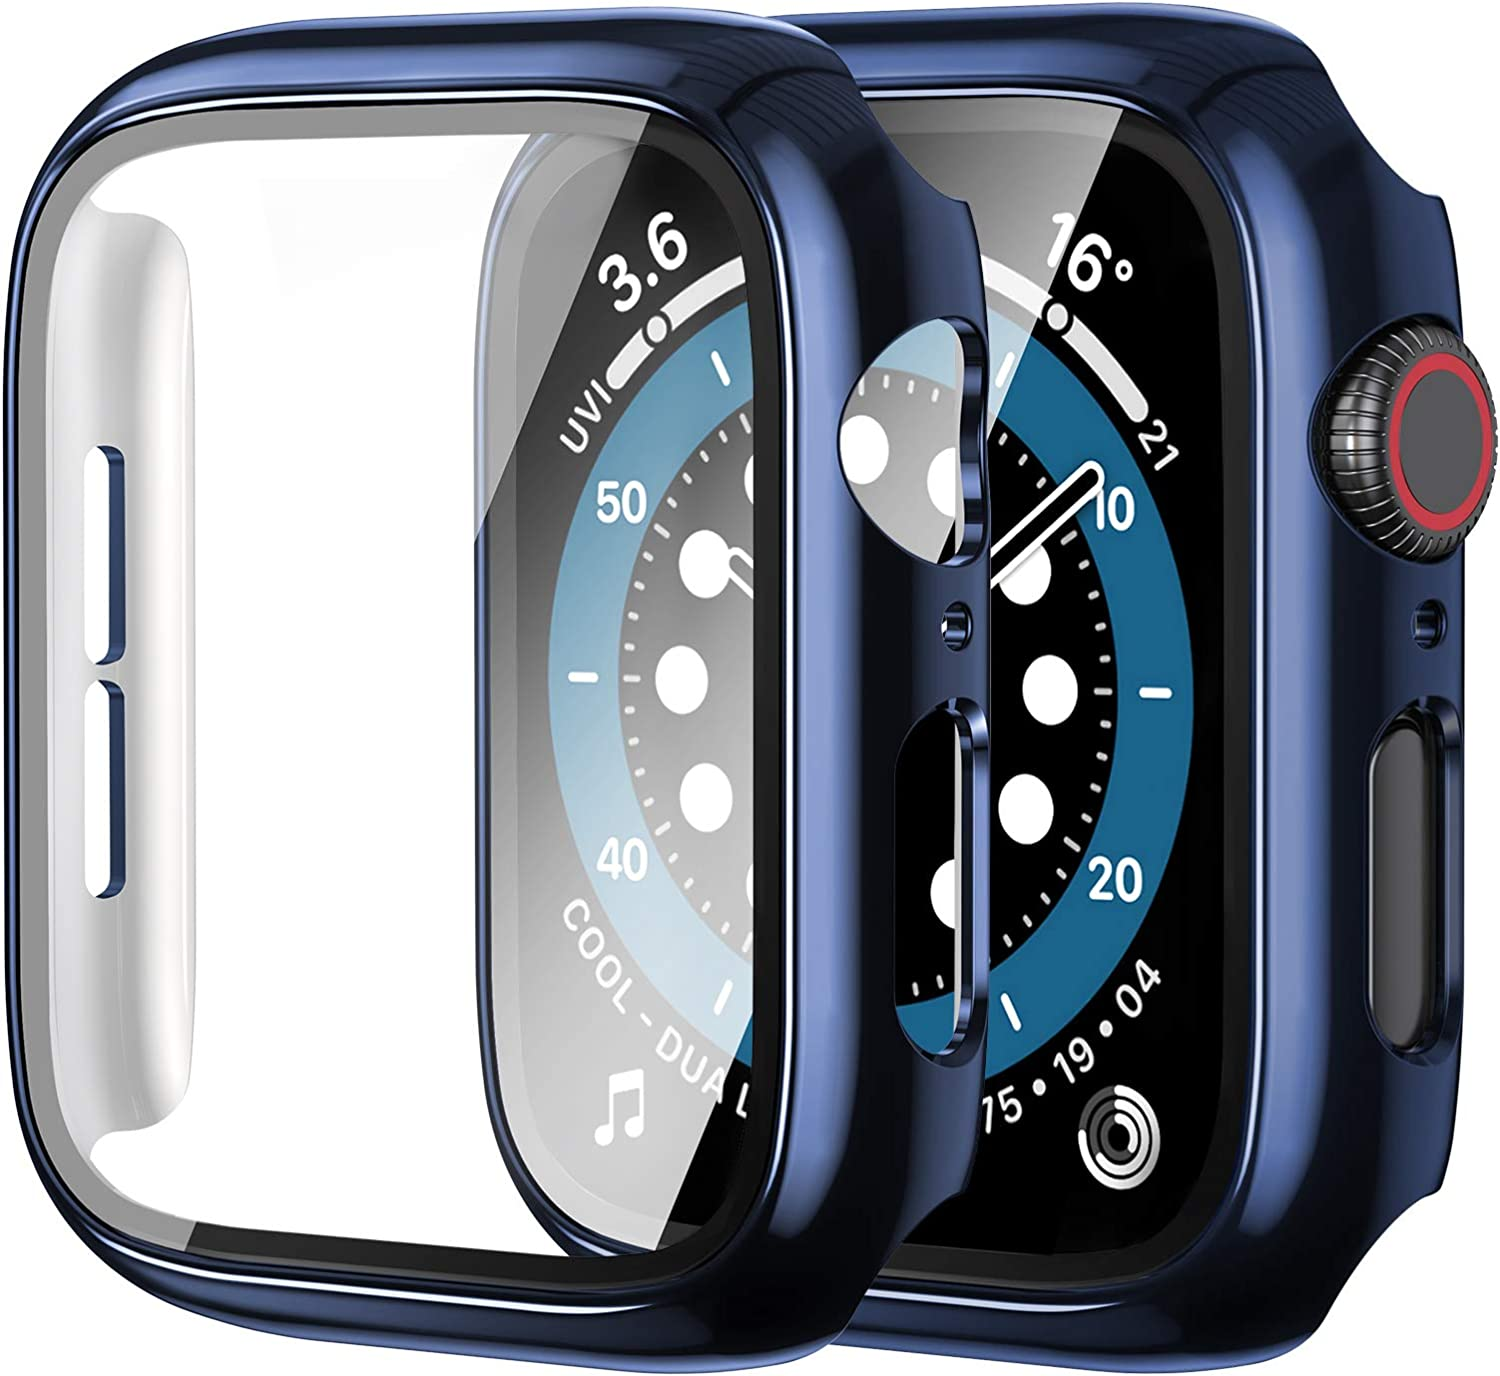 [2 Pack] Anwaut Case with Screen Protector for Apple Watch Series 6/SE/5/4 44mm,Full Defense Coverage with Tempered Glass Cover Accessories for iWatch 44mm Women Men Blue